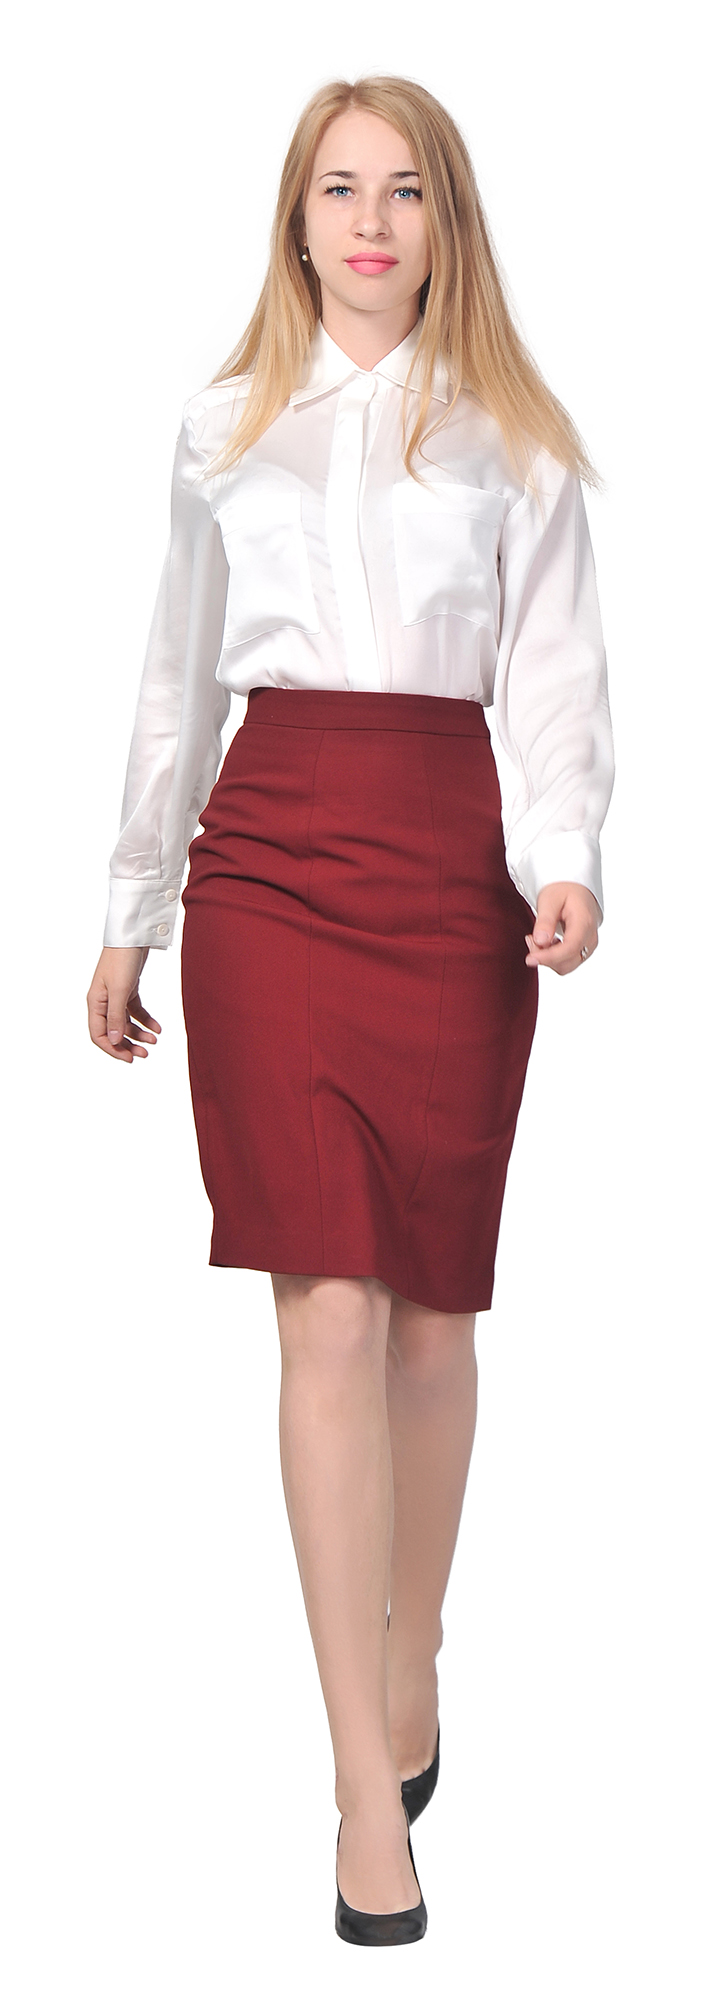 Marycrafts Women 039 S Lined Pencil Skirt Work